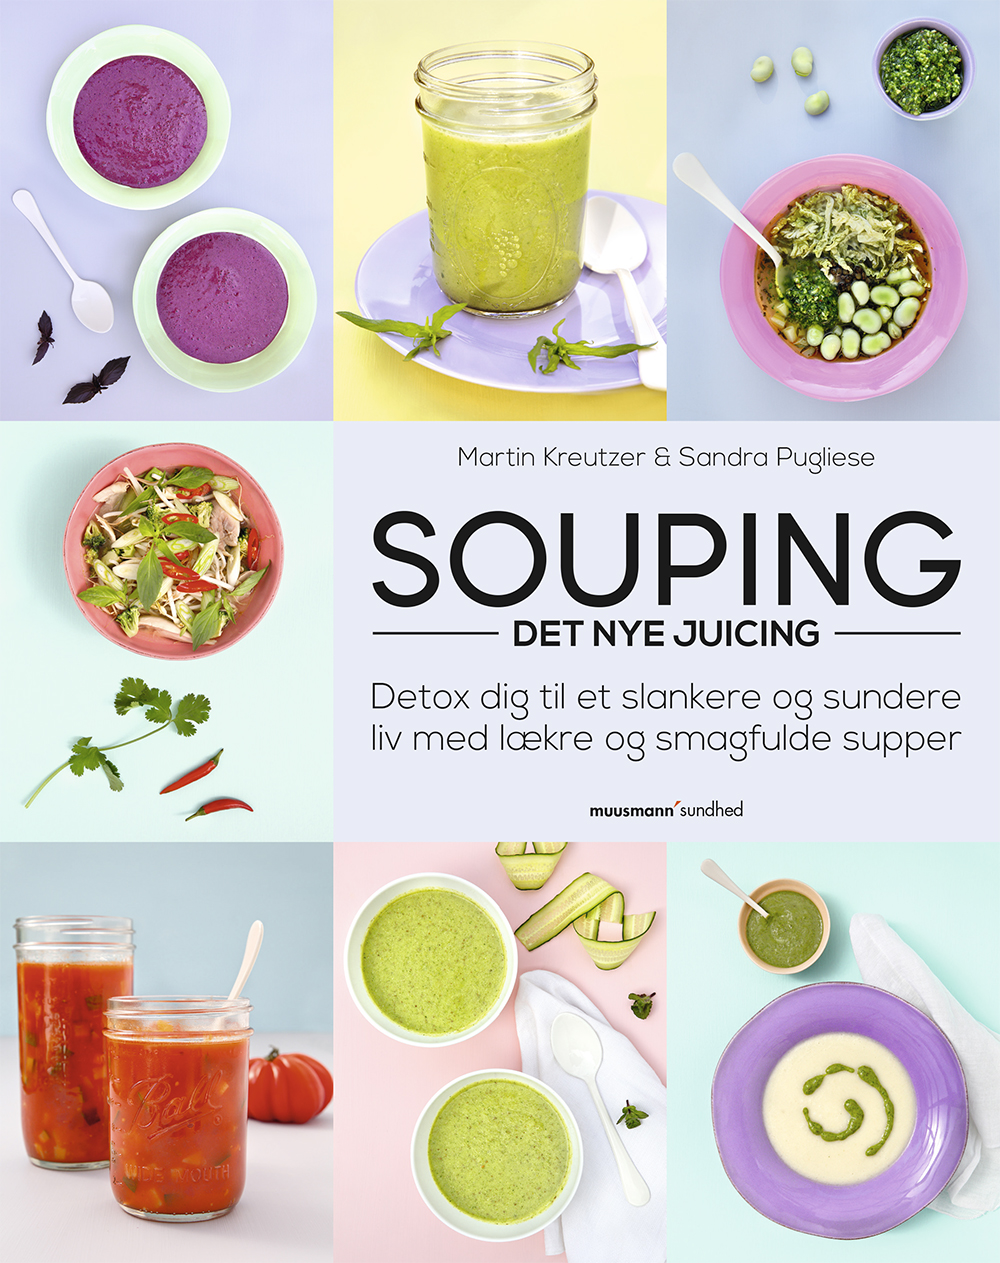 Souping – det nye juicing